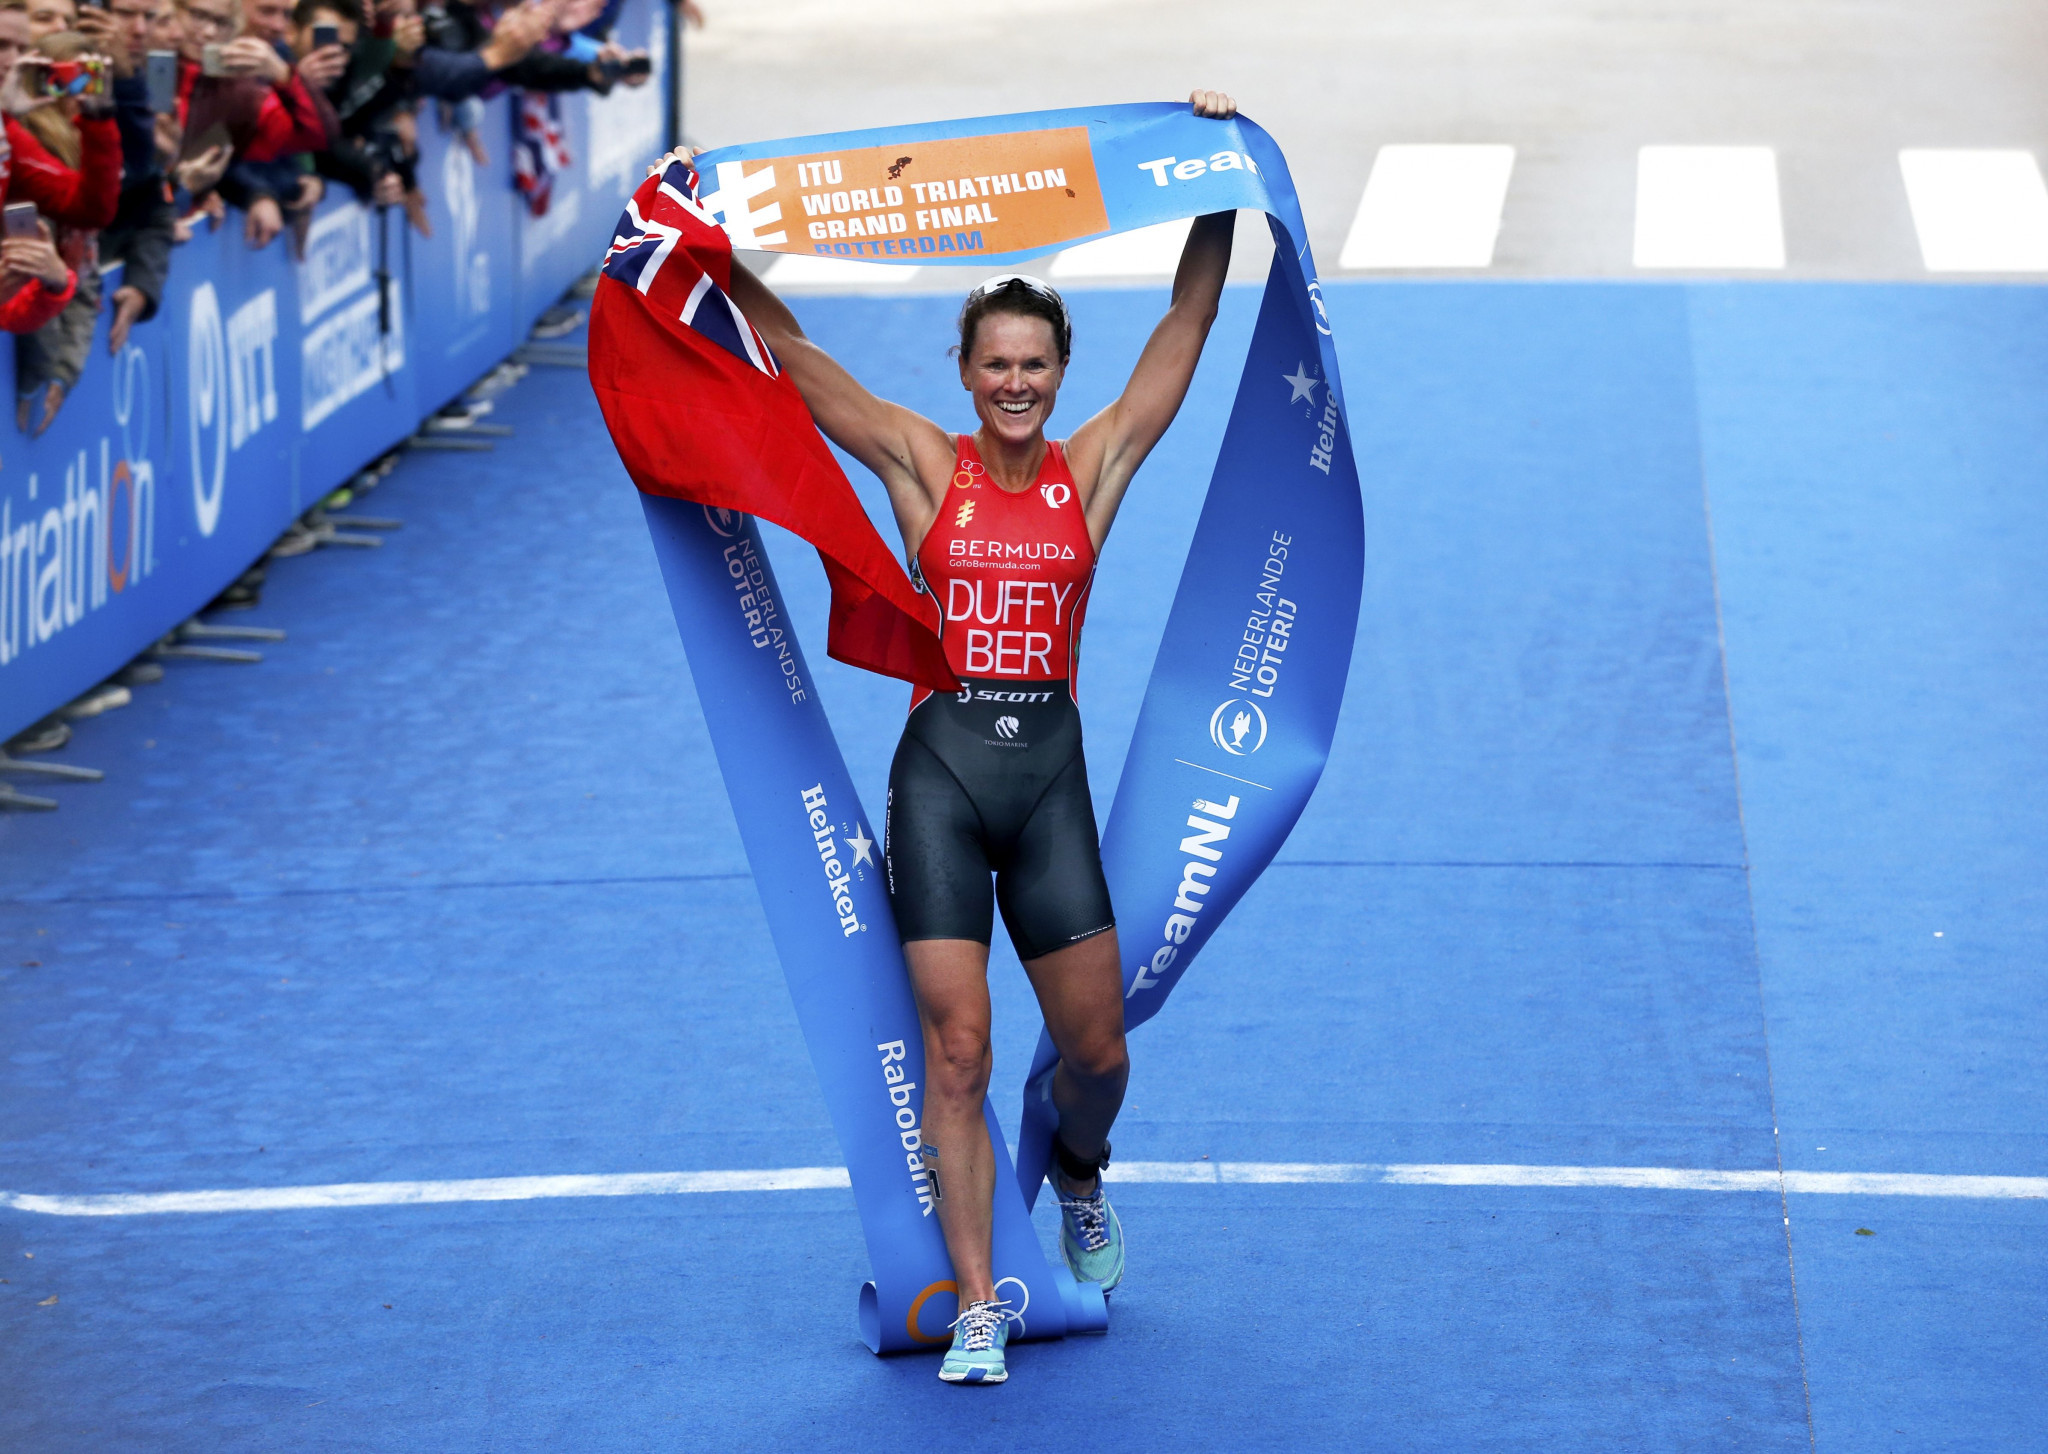 Mola and Duffy retain triathlon world titles at Rotterdam Grand Final